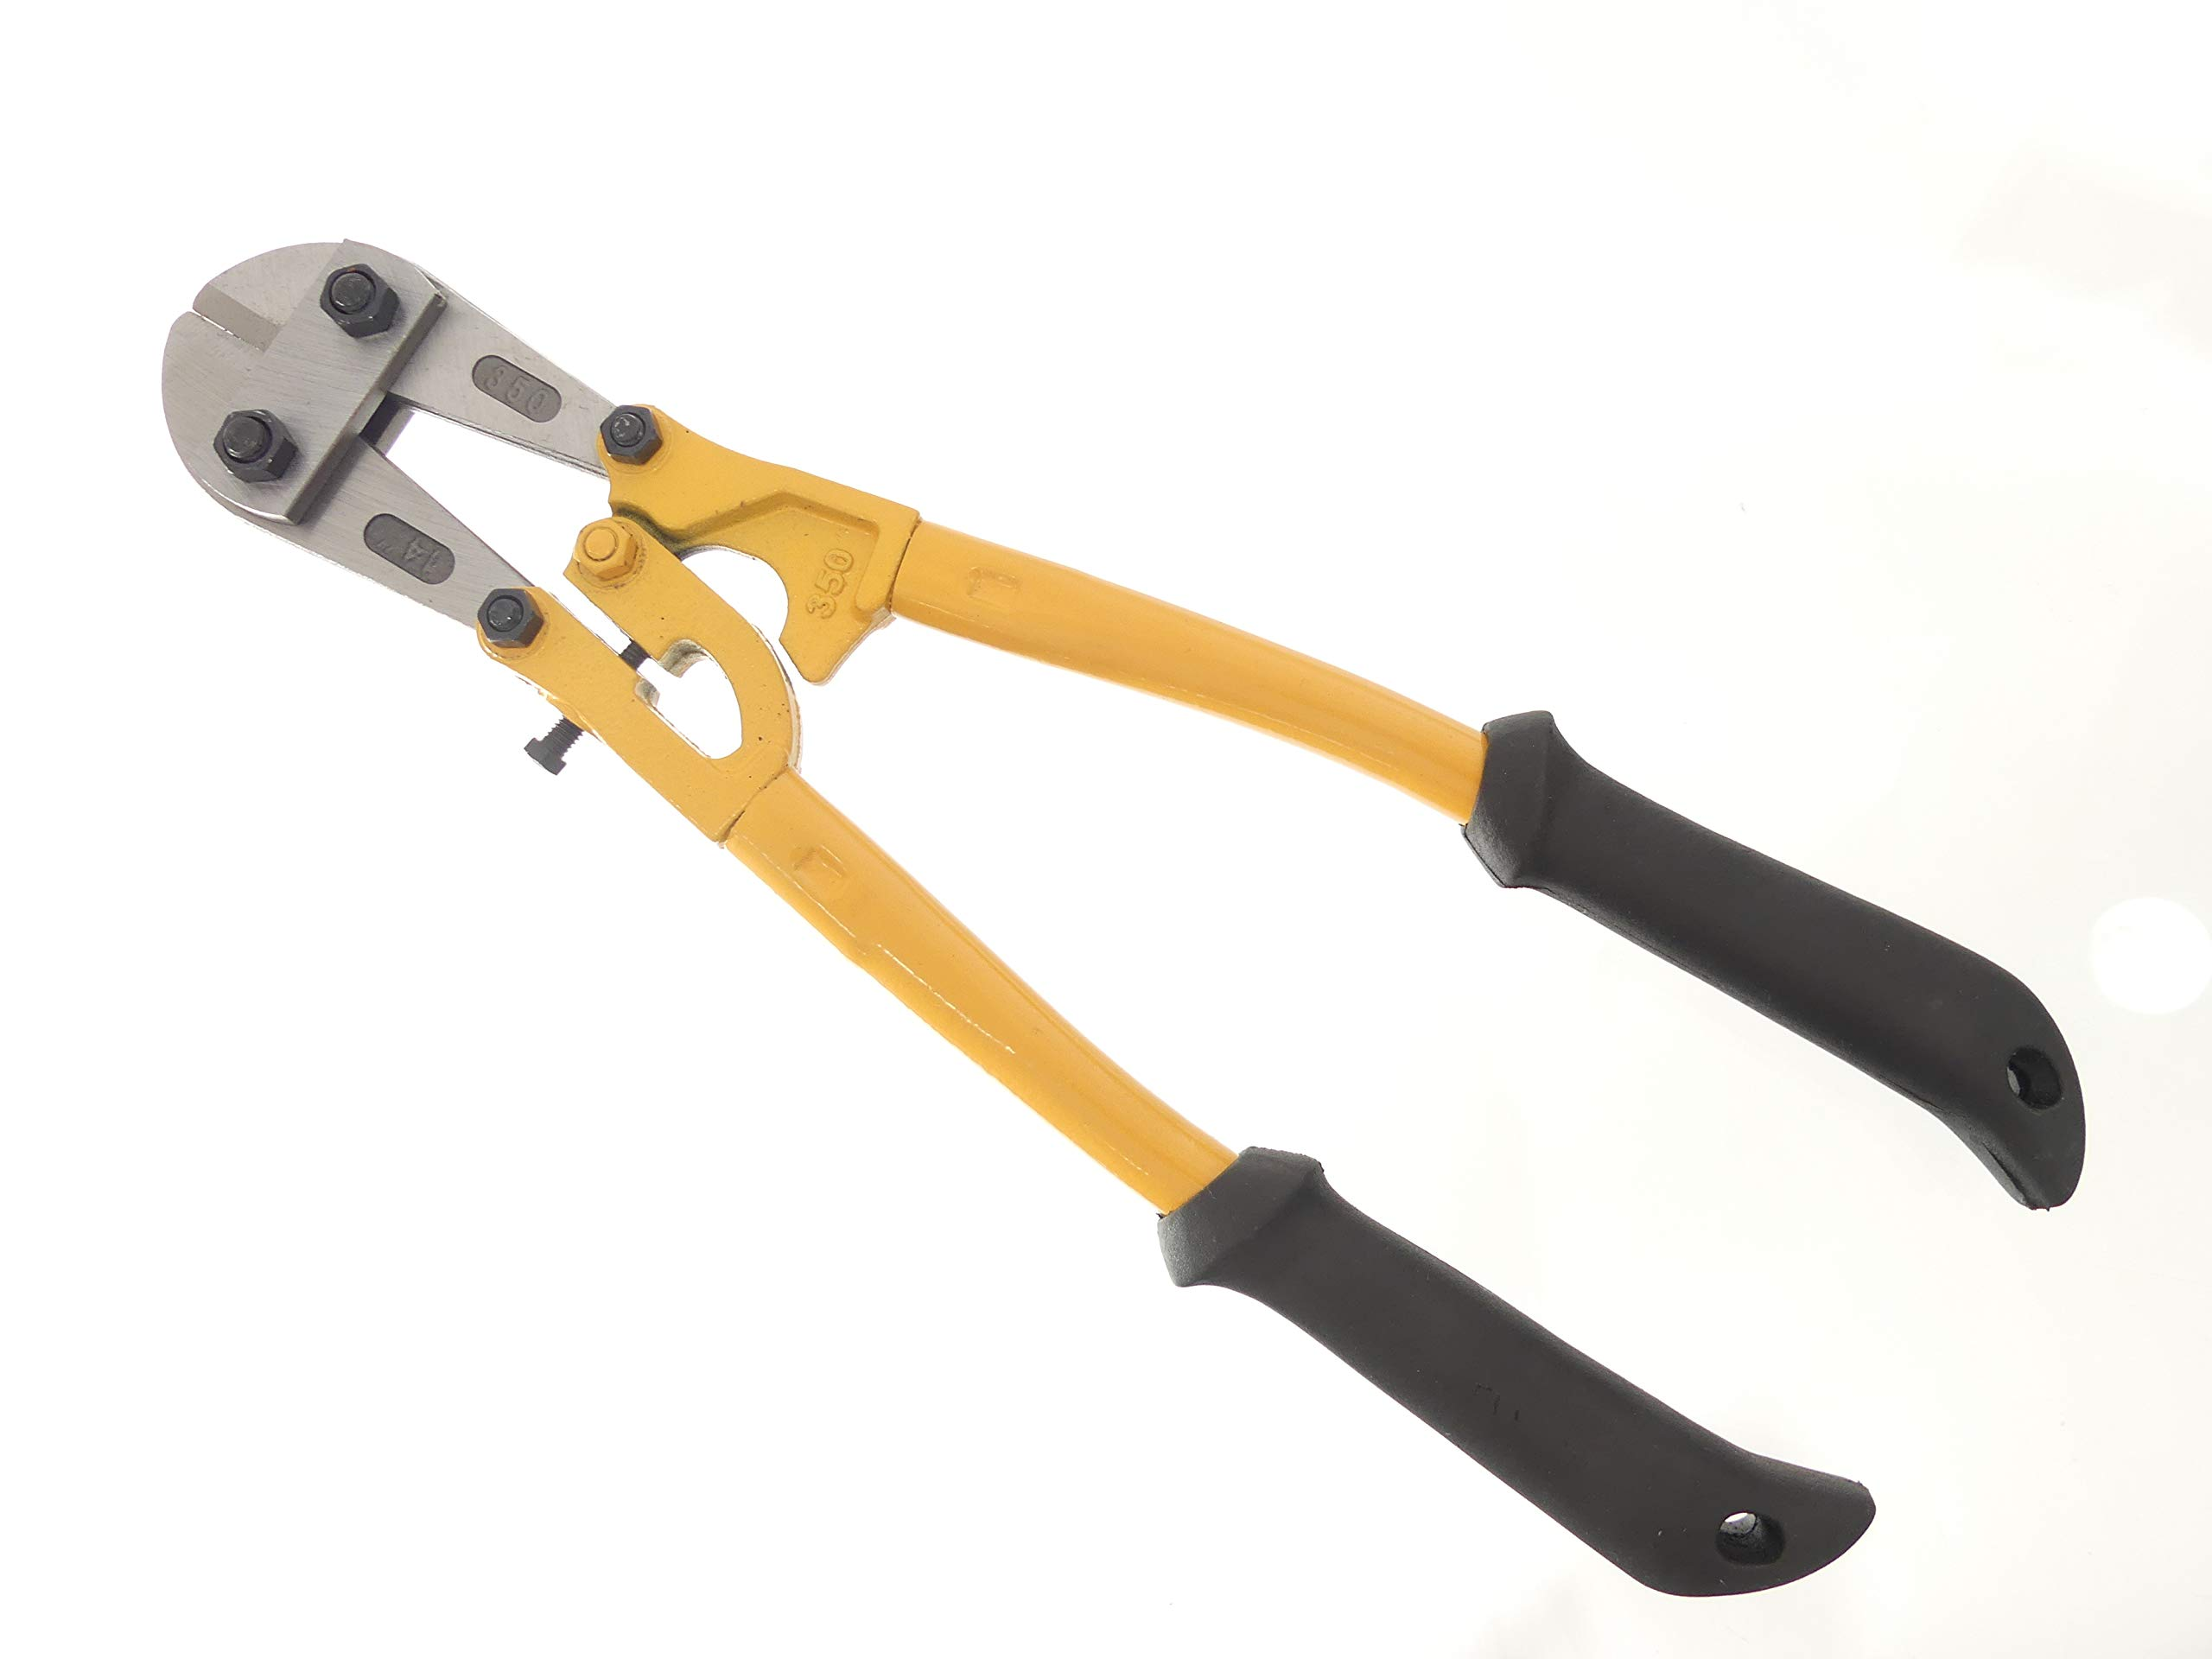 Tech 12'' Bolt Cutter, Compound Action, Wire, Cable, Chain, Comfortable Grips, Snips, Hand Tools by Tech Team